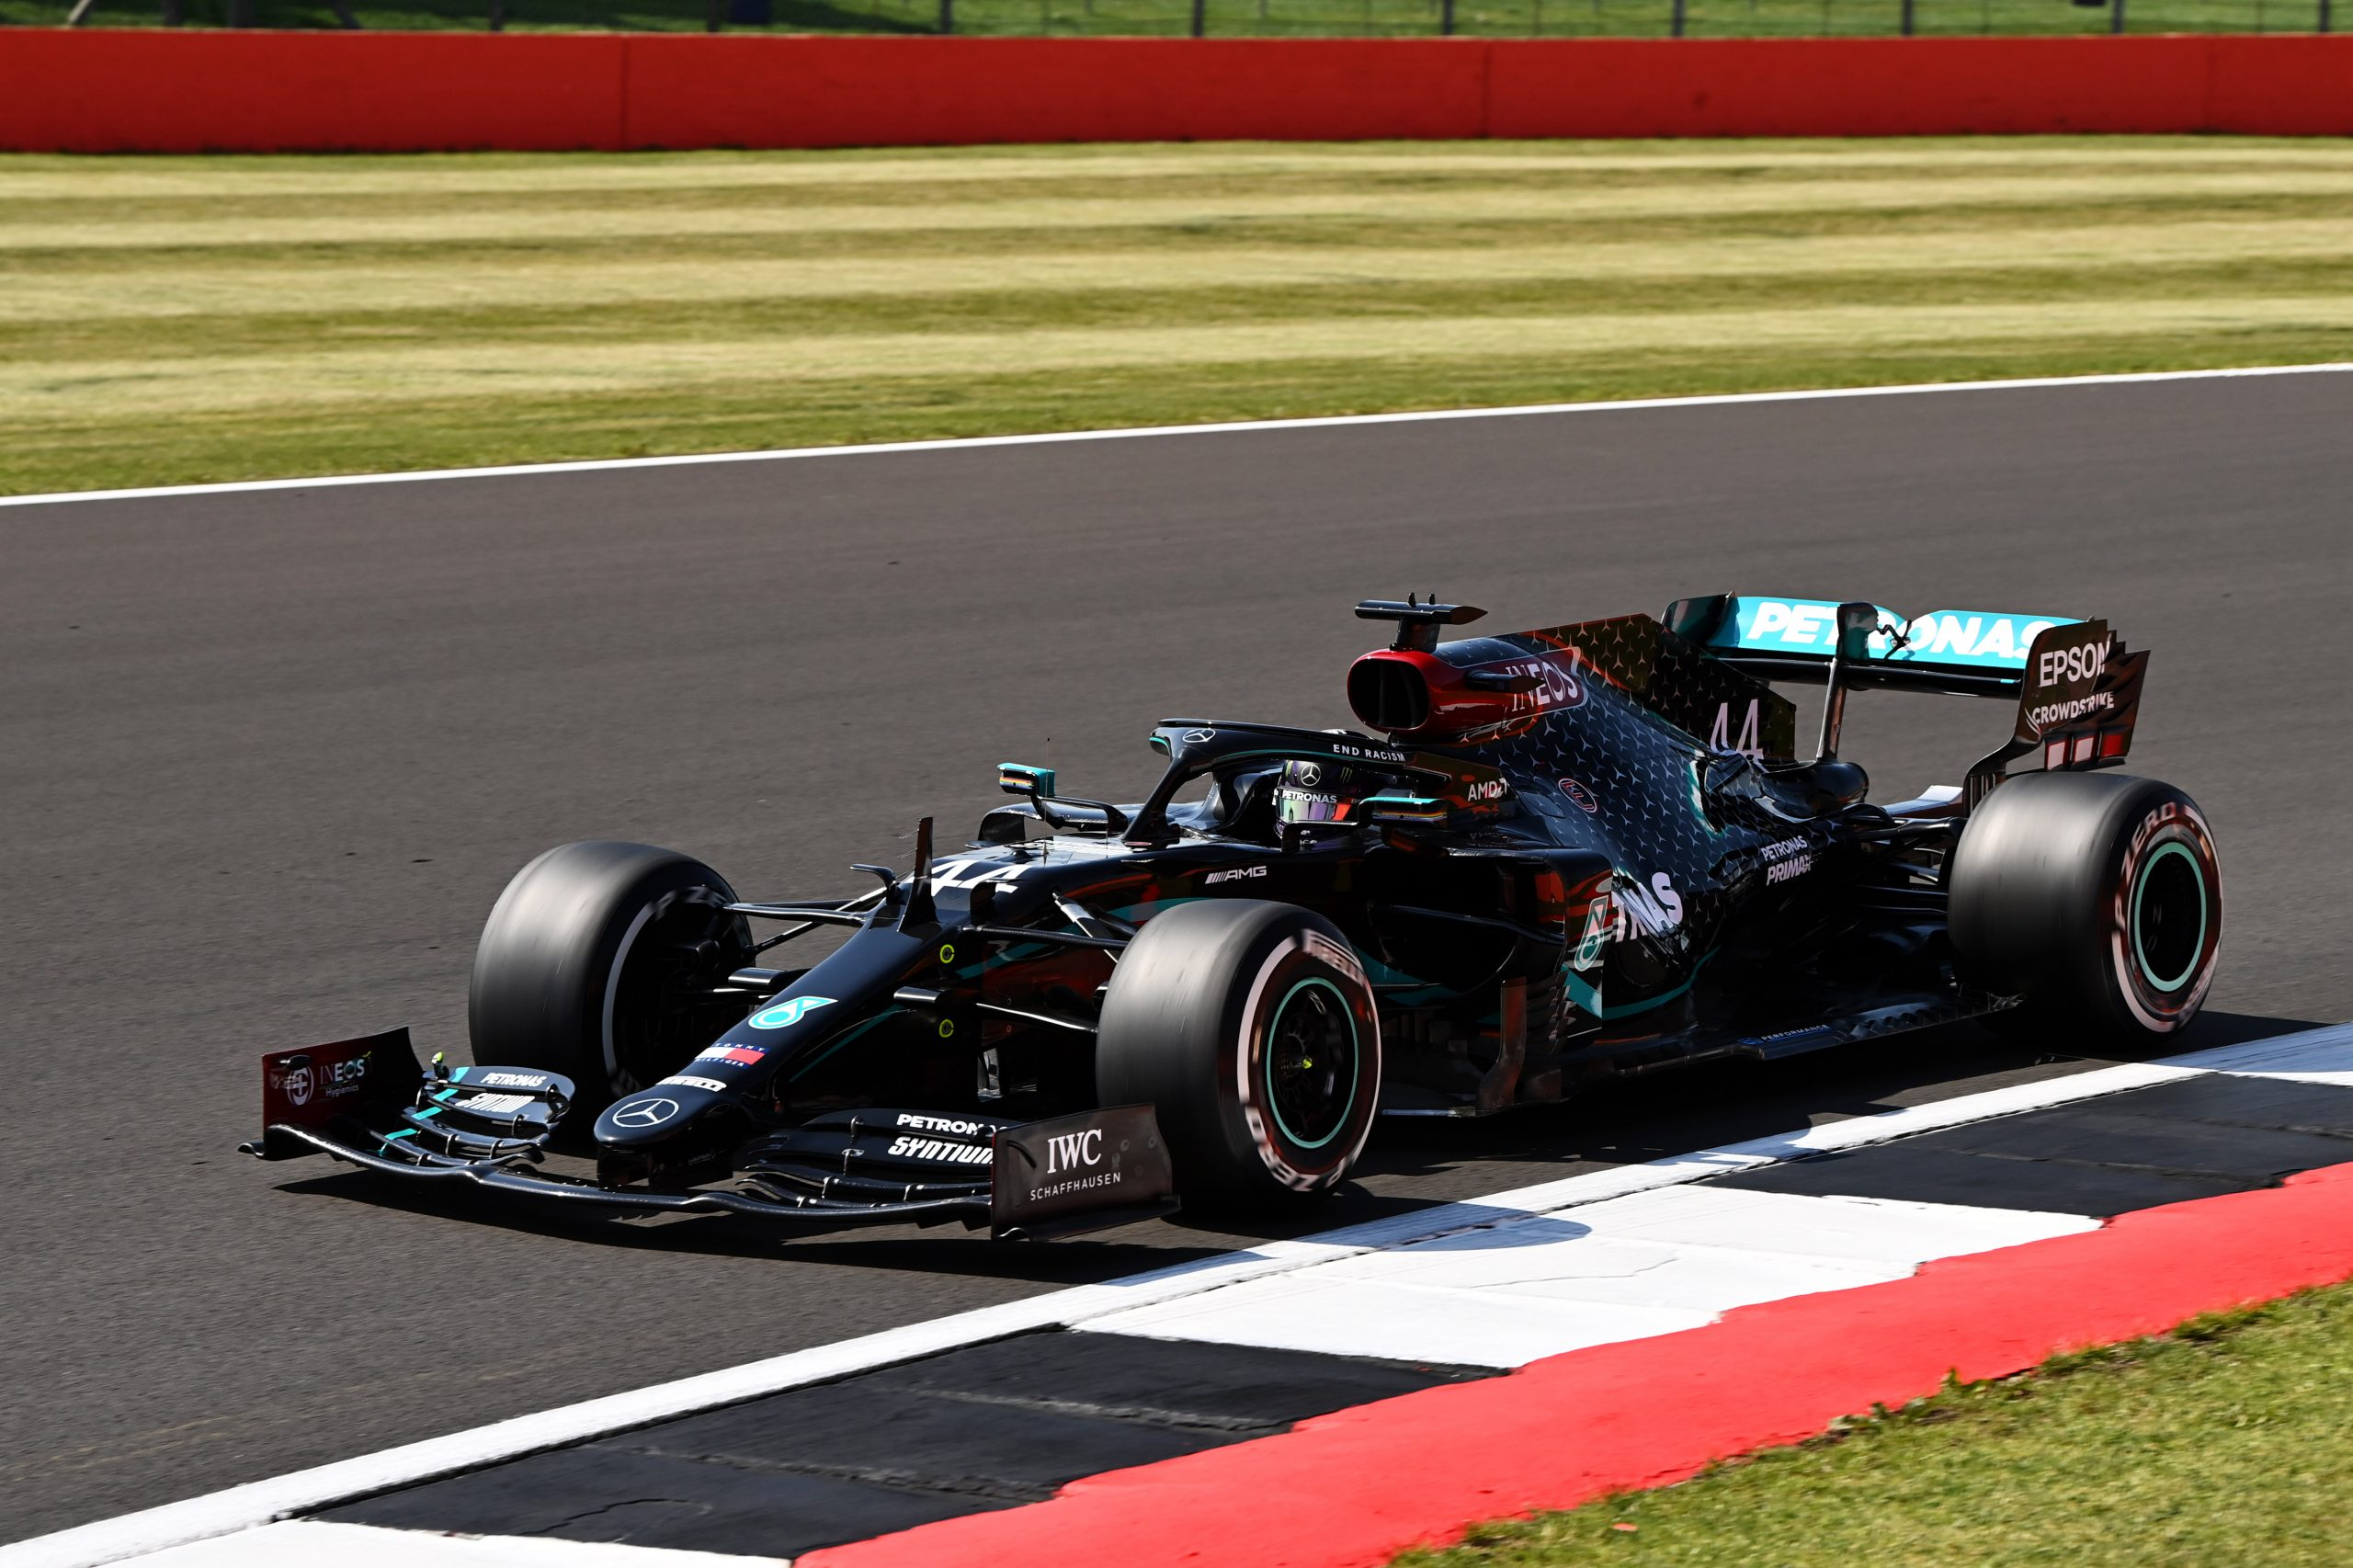 F1 Qualifying Results 2020 British GP & Pole Position Time